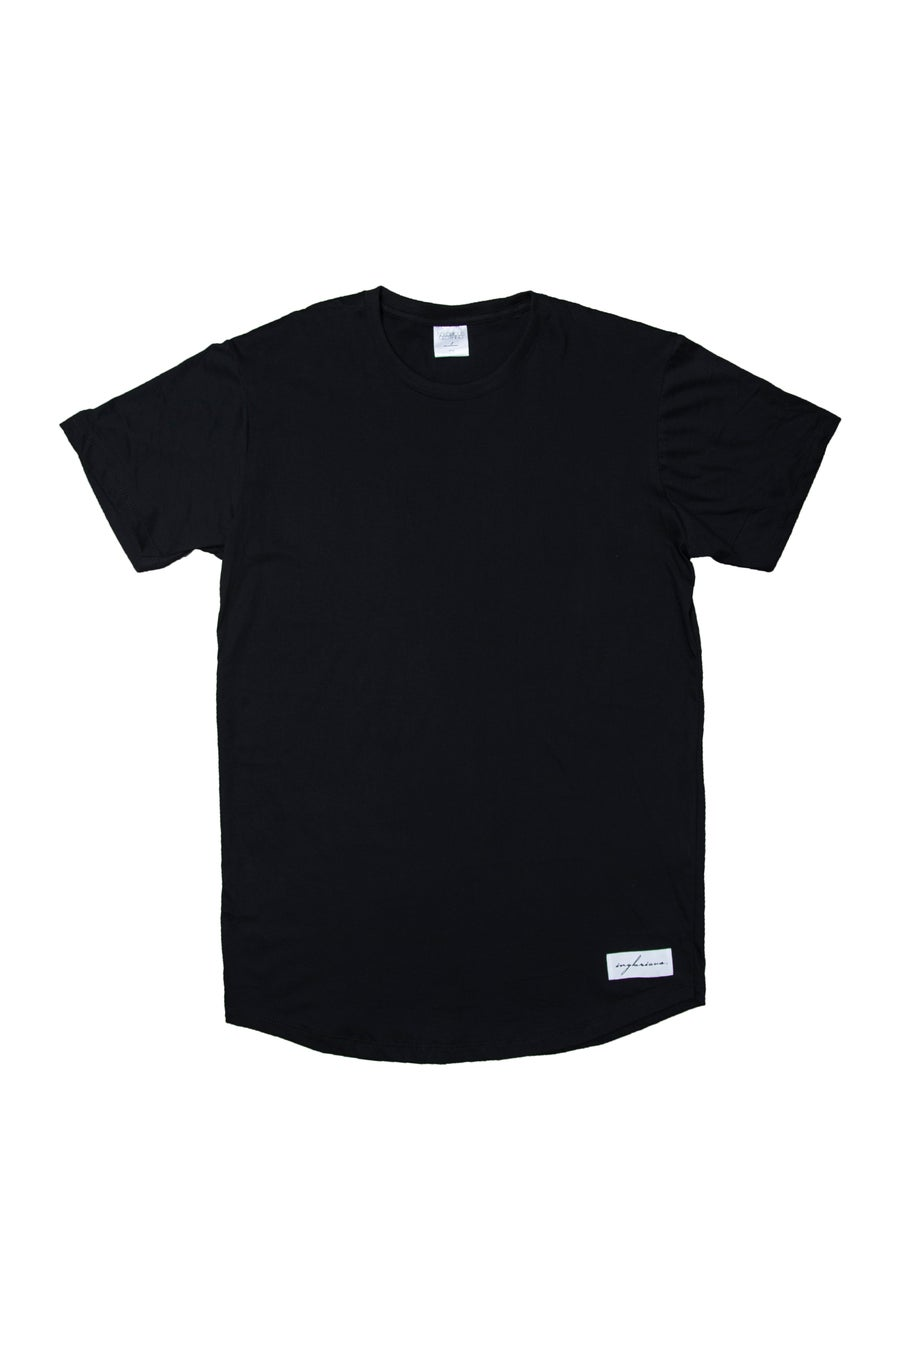 Image of Inglorious Curved Hem (Black)